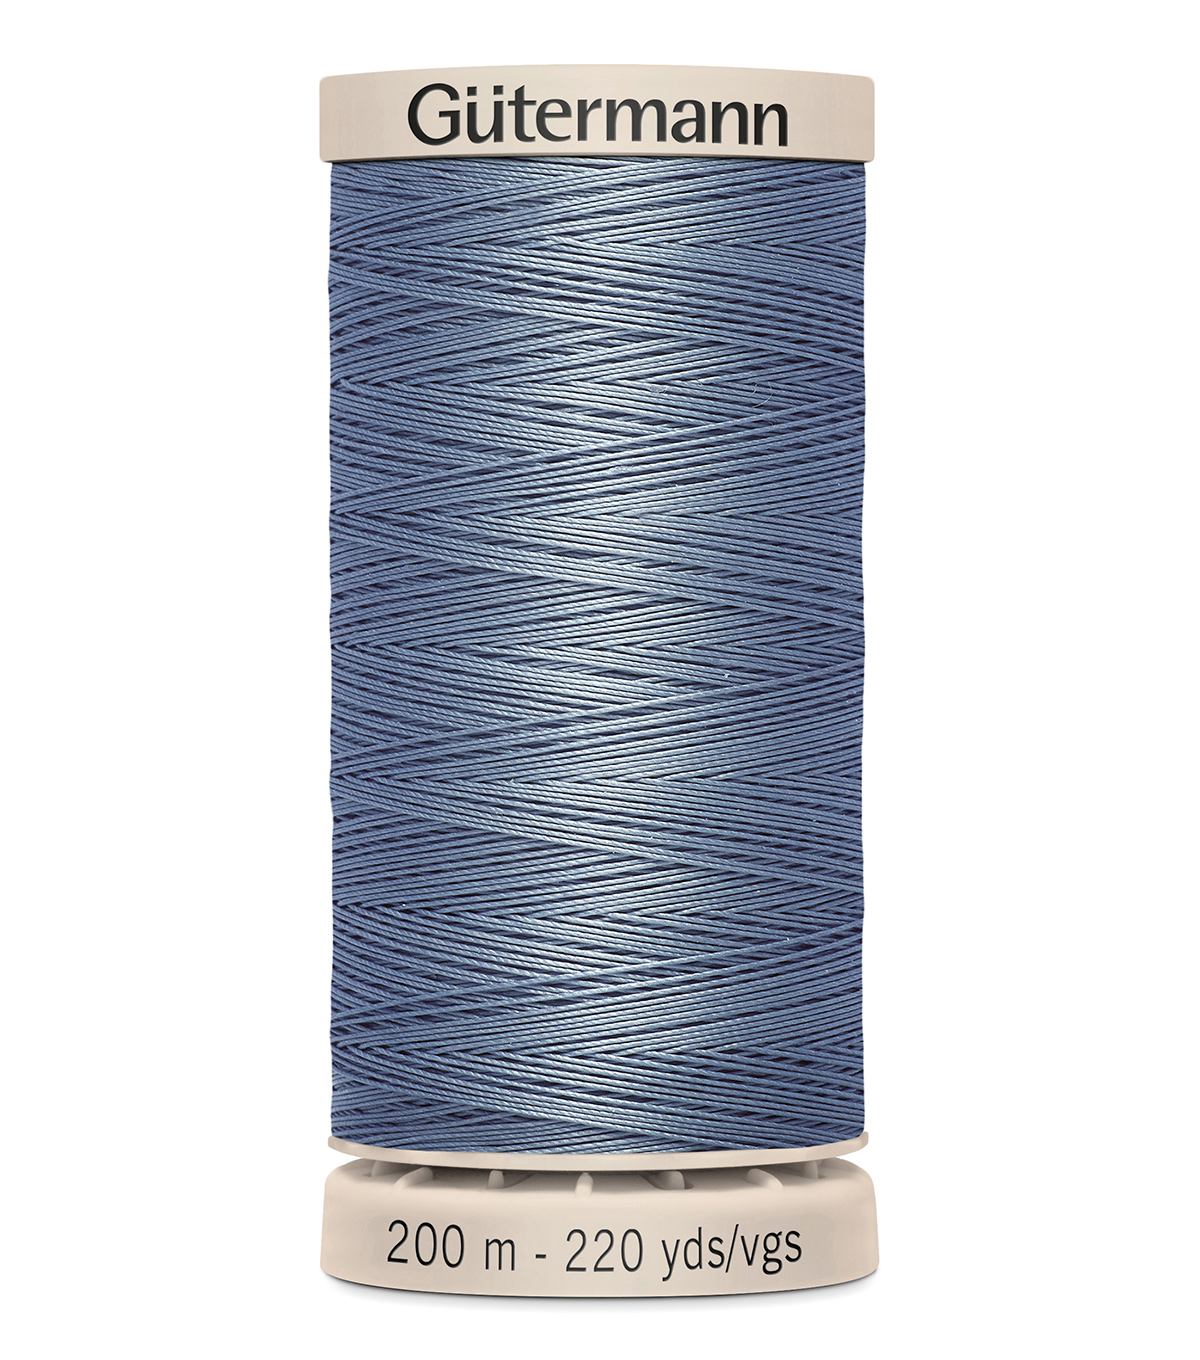 Gutermann Hand Quilting Thread 200 Meters (220 Yrds)-Primary, Light Slate Blue #5815